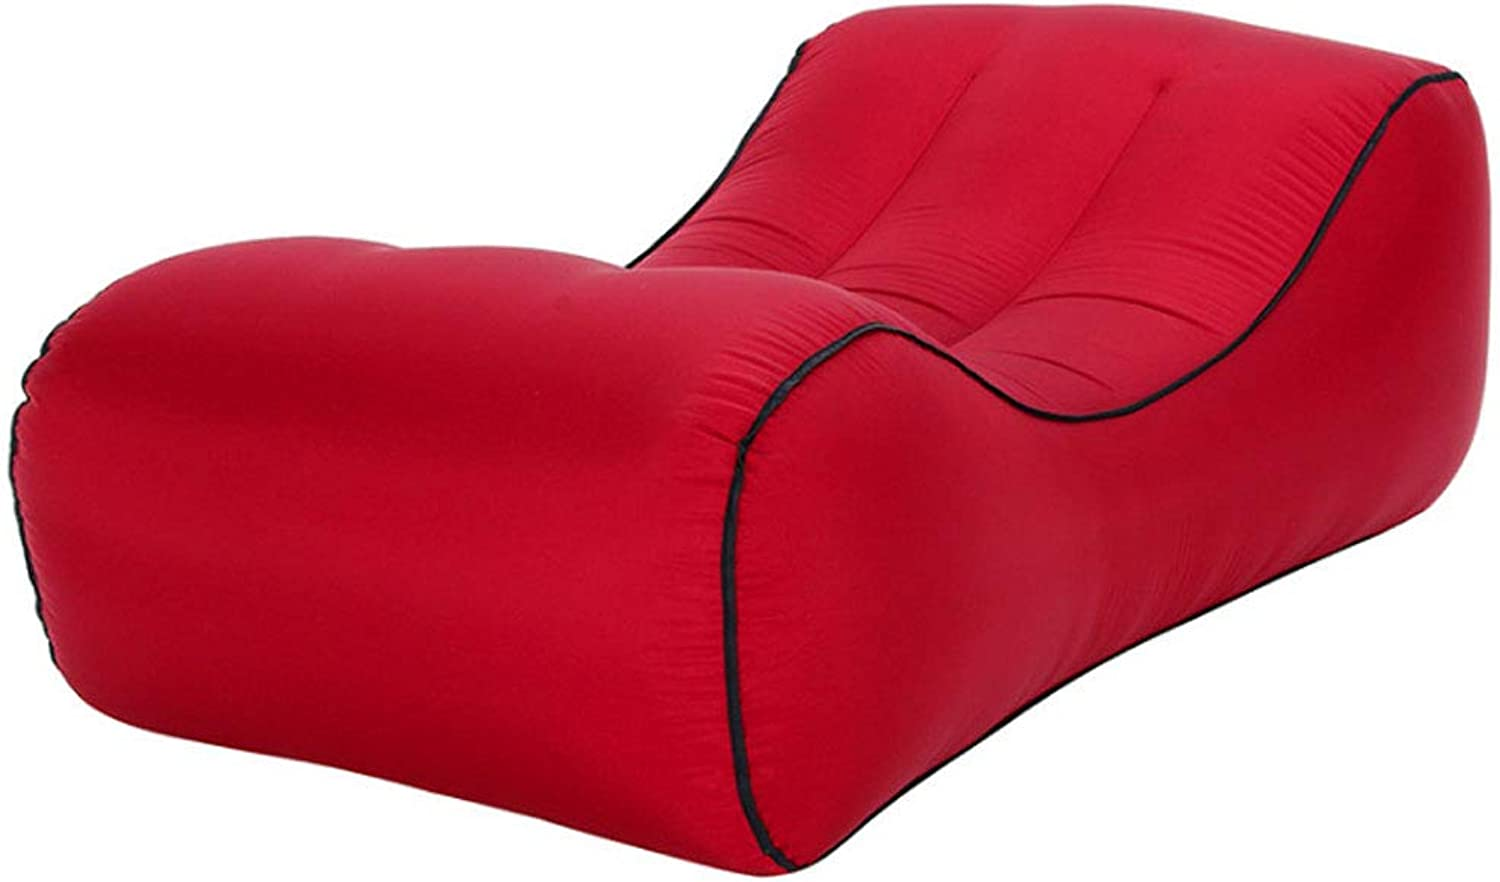 Air Sofa Bed Indoor Outdoor Portable Lounge Chair Moisture Proof mat Water Inflatable Lazy Sofa Bed,WineRed,SUPERLAREG